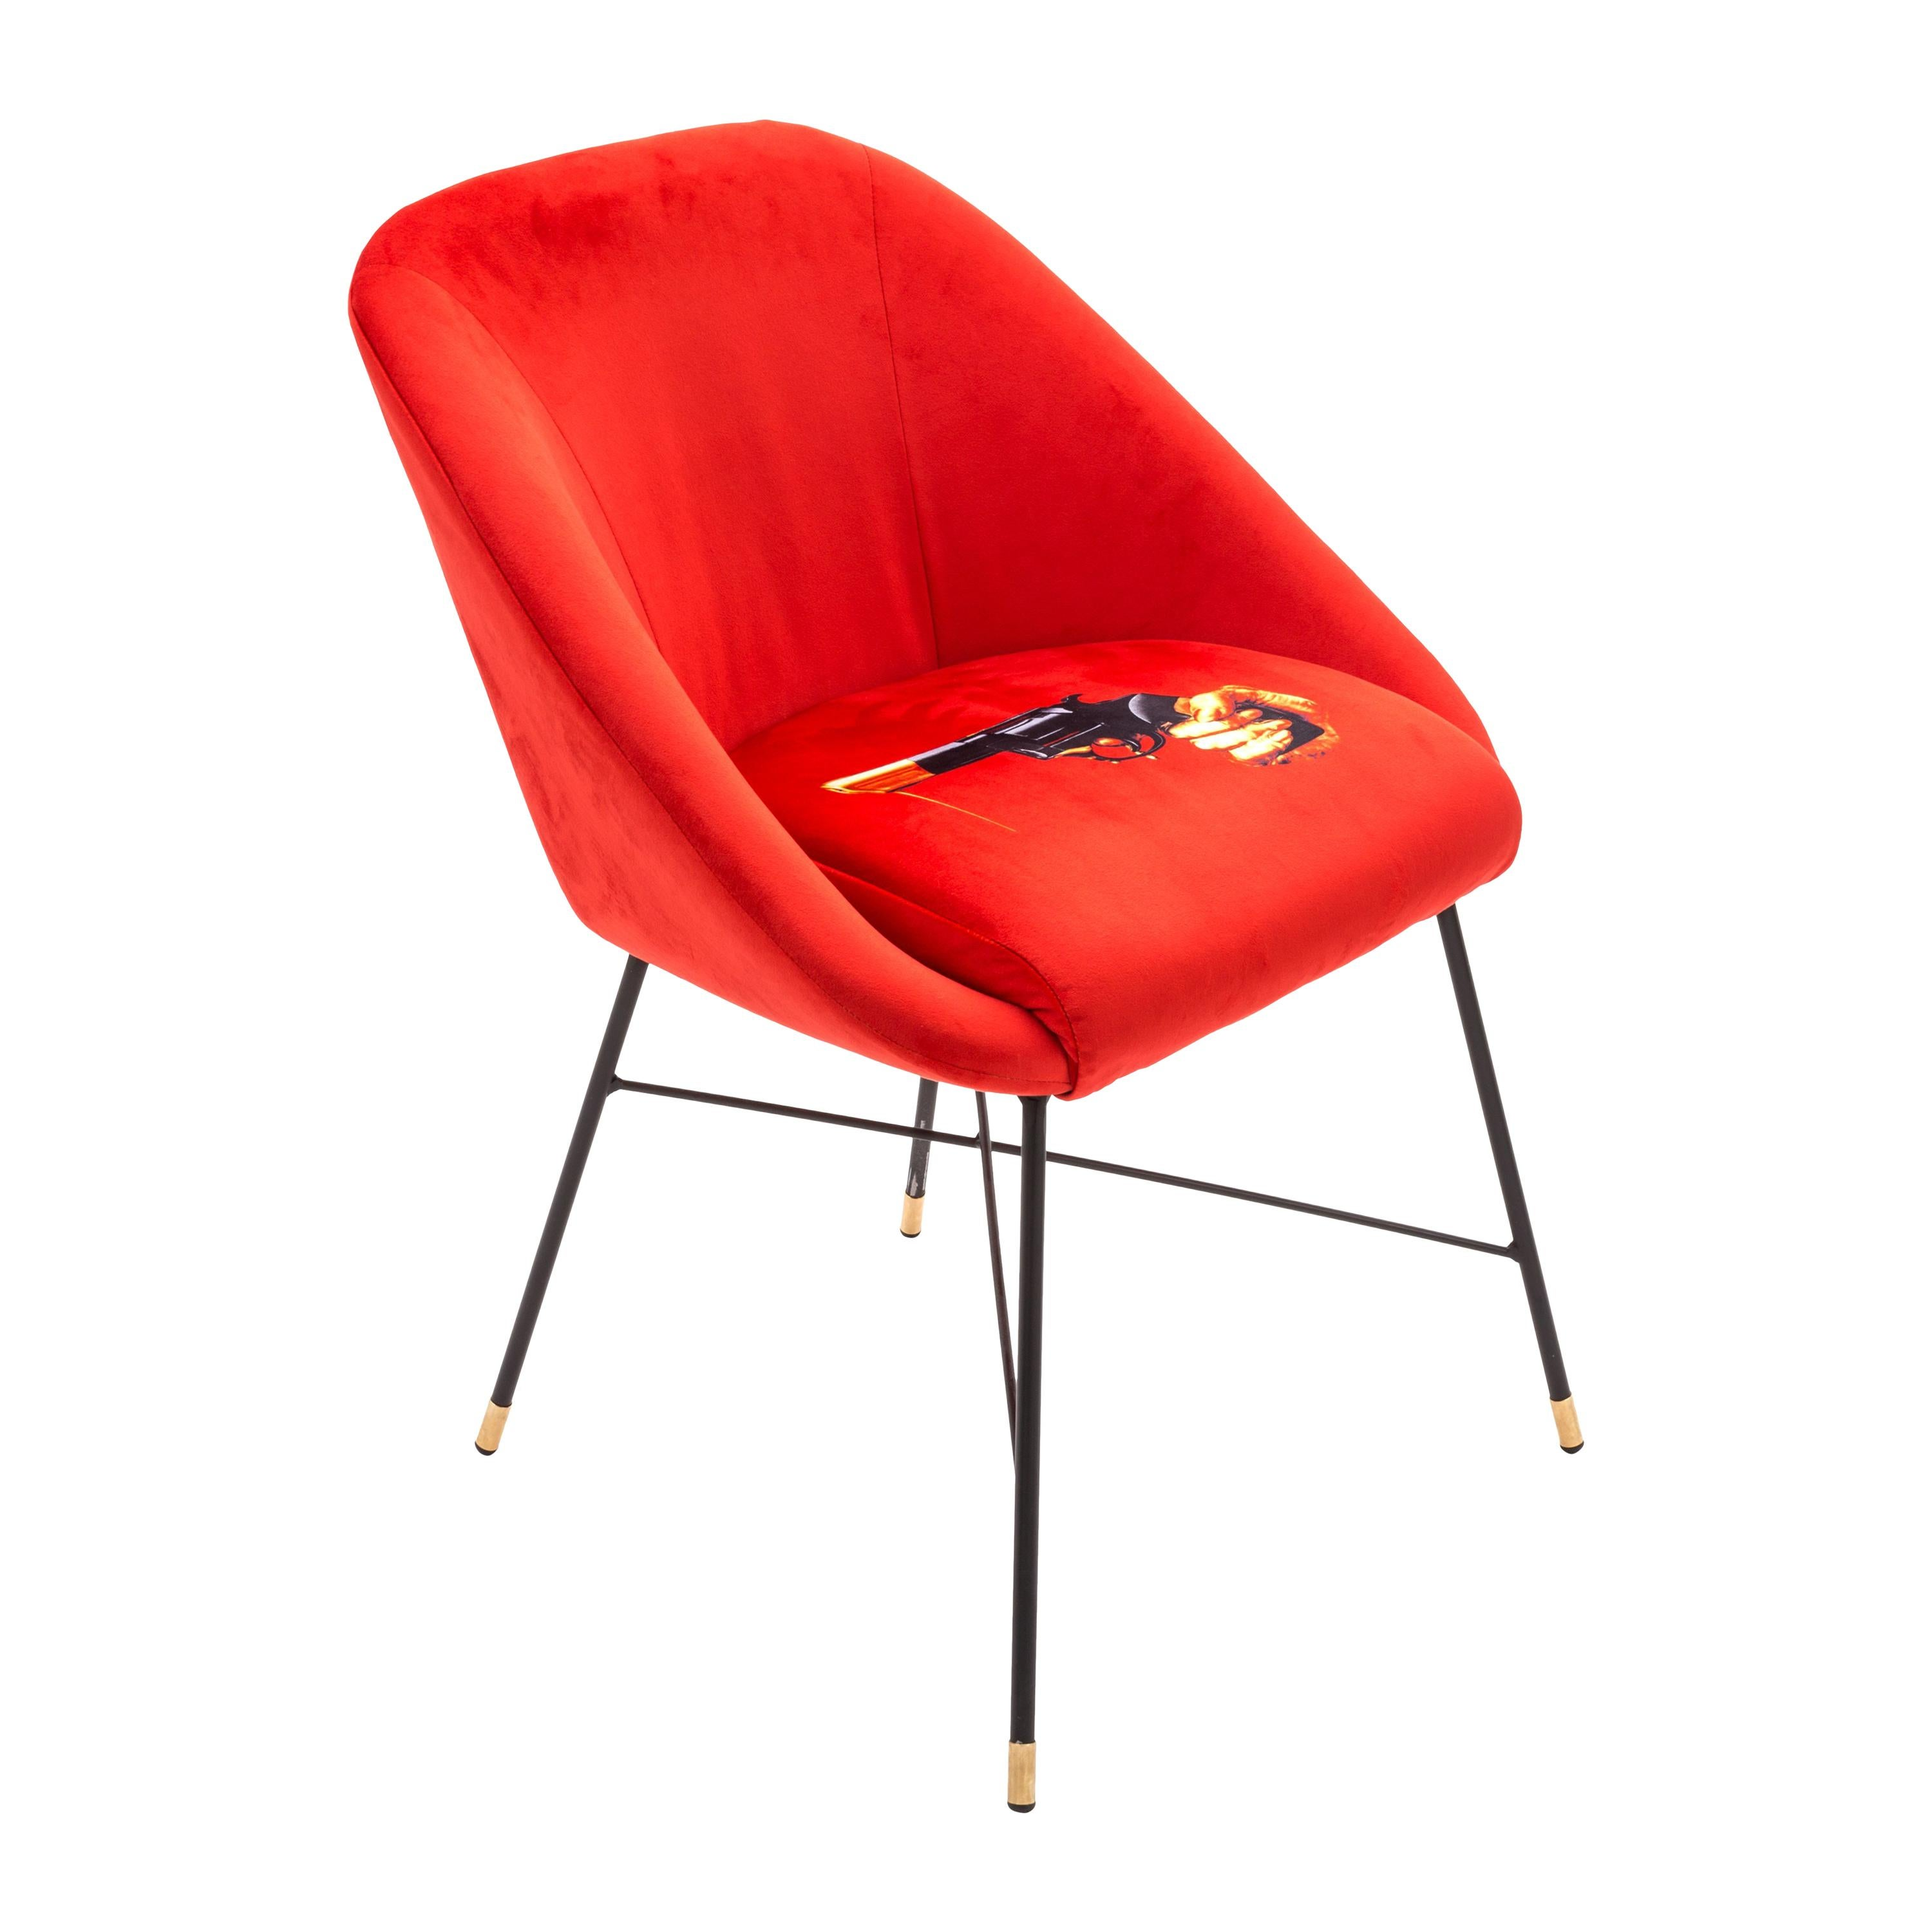 """Seletti """"Revolver"""" Upholstered Occasional Chair by Toiletpaper"""